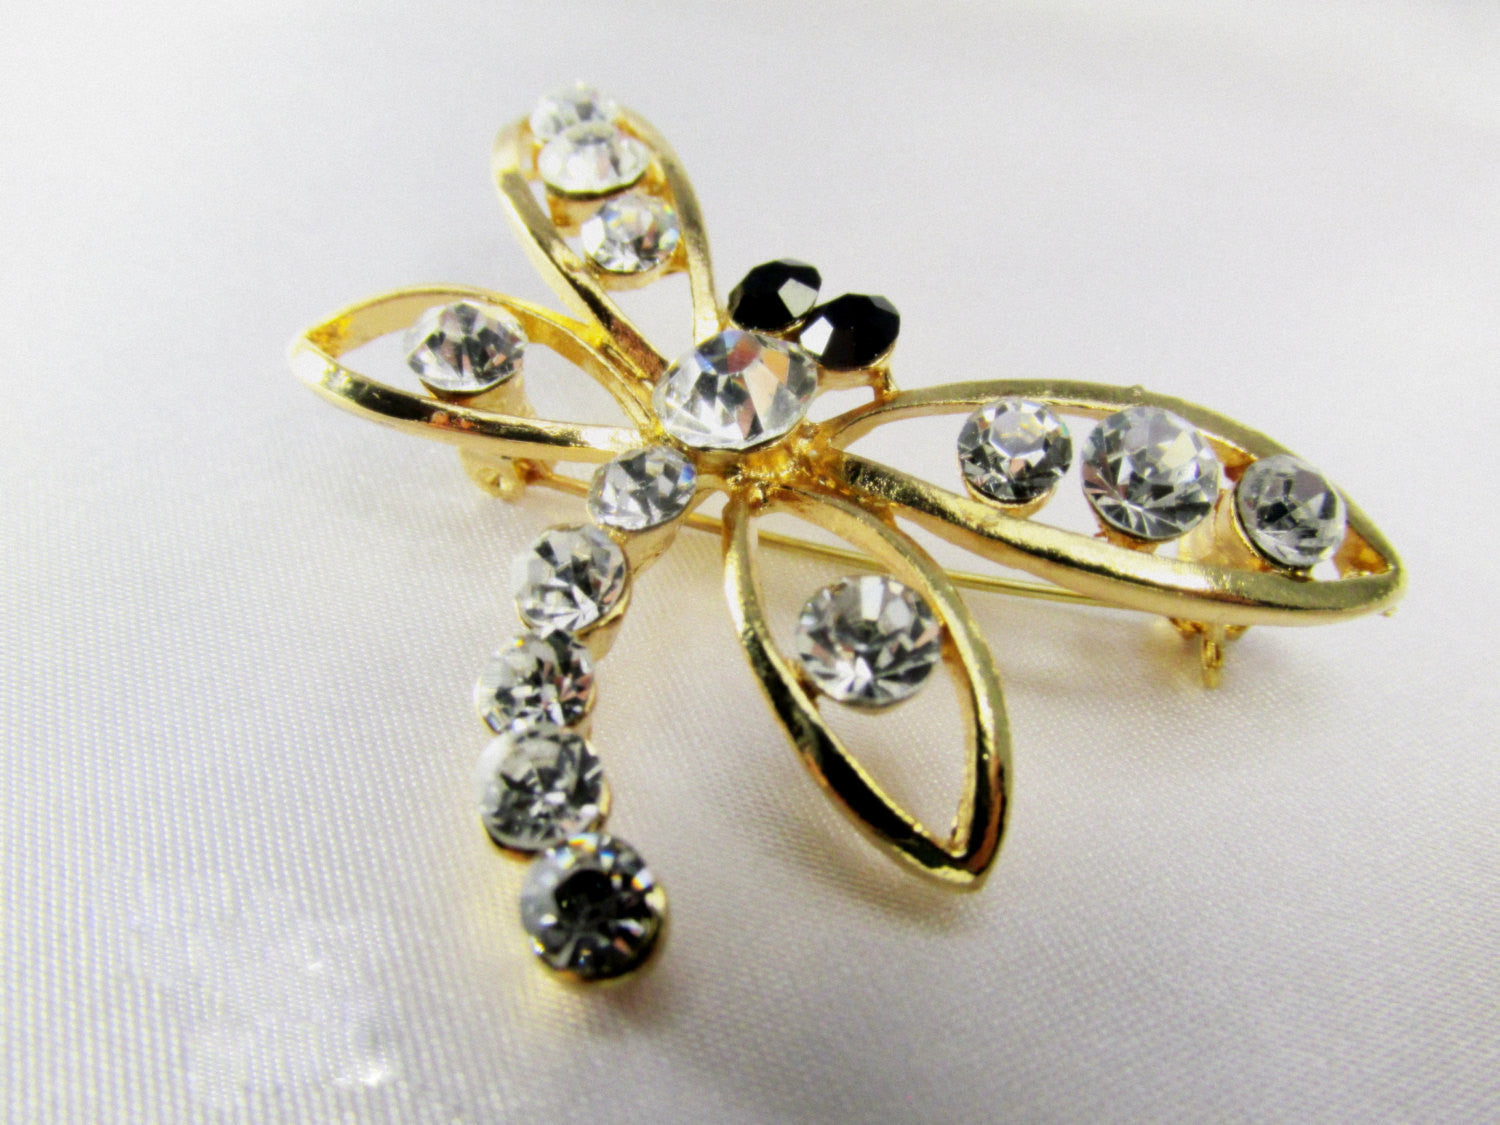 Dragonfly 2 Inch Brooch in Gold, Crystal and Black - Odyssey Cache - 2